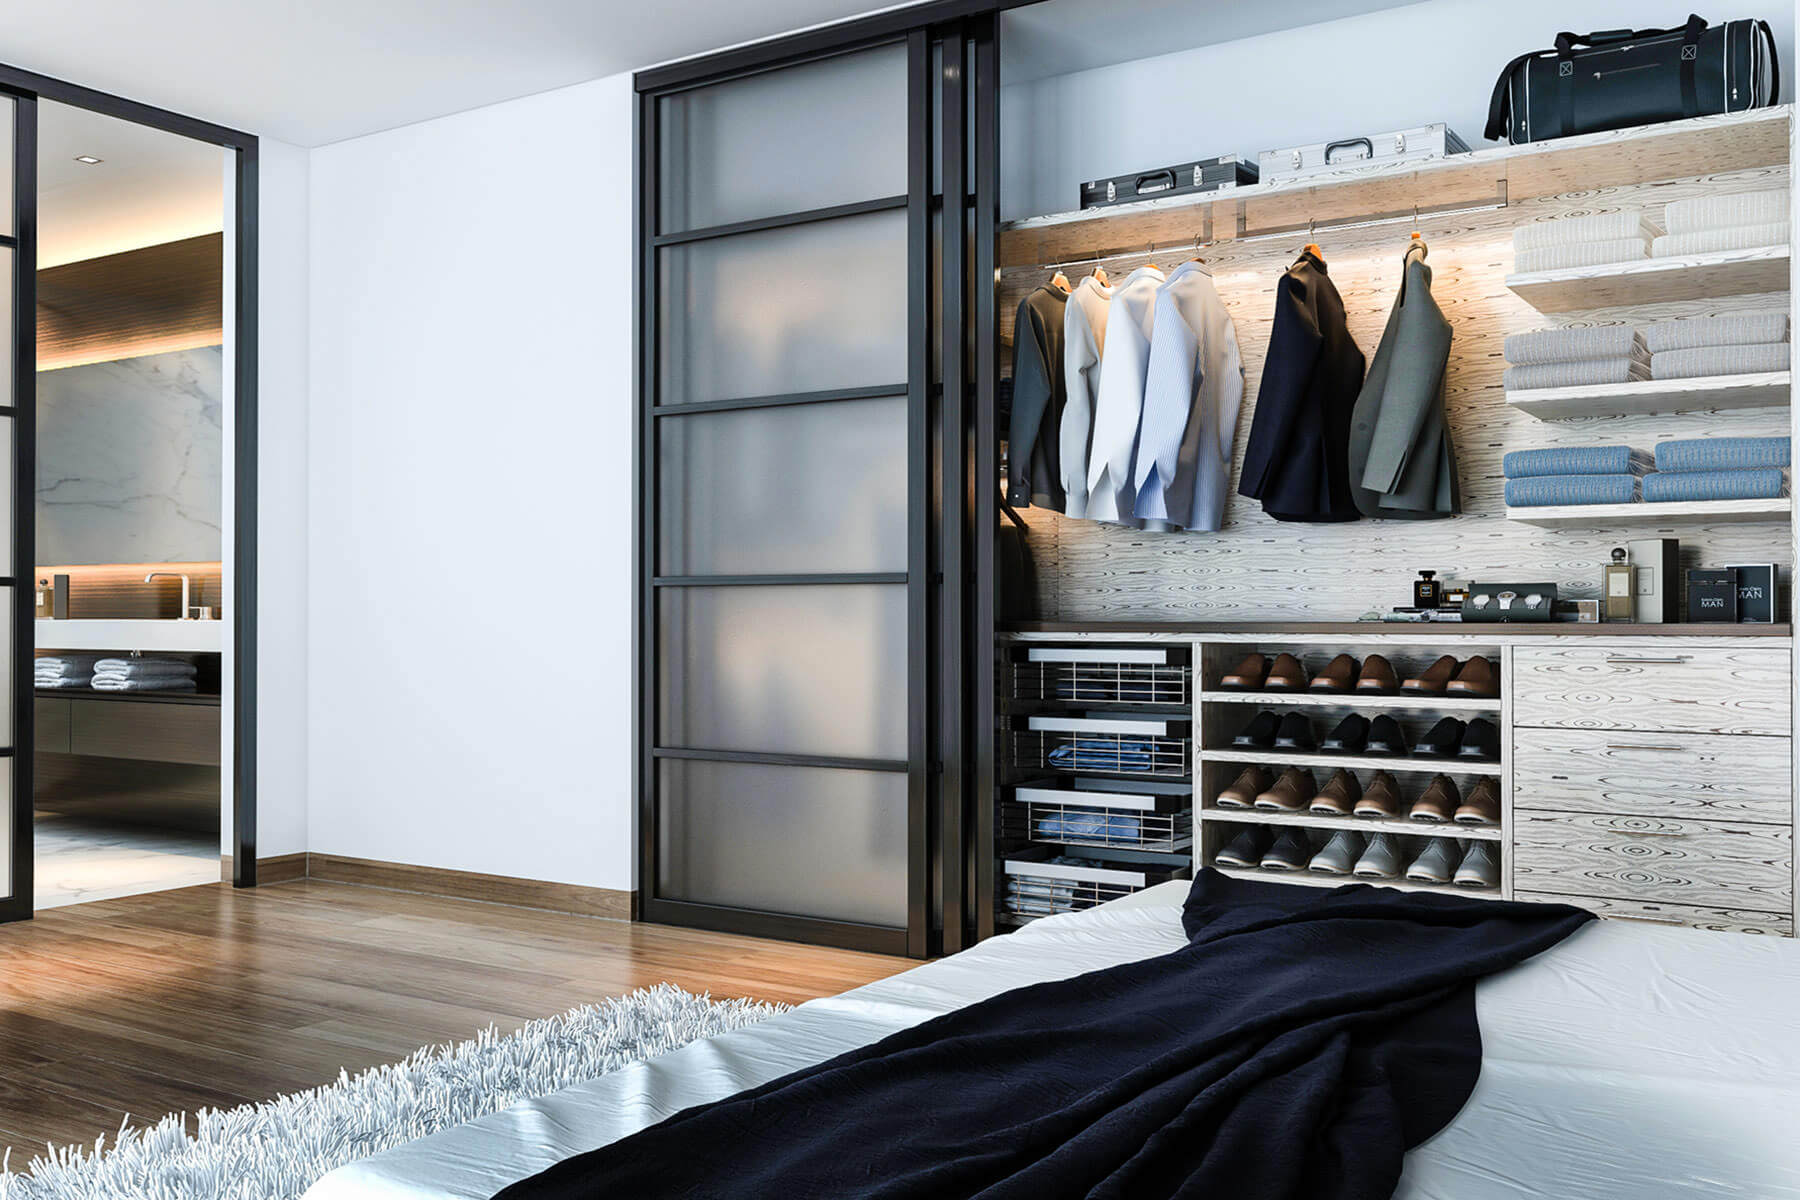 This handsome and modern closet organizer is very masculine, with its straight, bold lines and pale neutral-toned woodwork. Everything, from the immaculate suit jackets to the travel duffel bags are organized exactly in place. This closet style is perfect for a bachelor who prioritizes organization over flashiness.